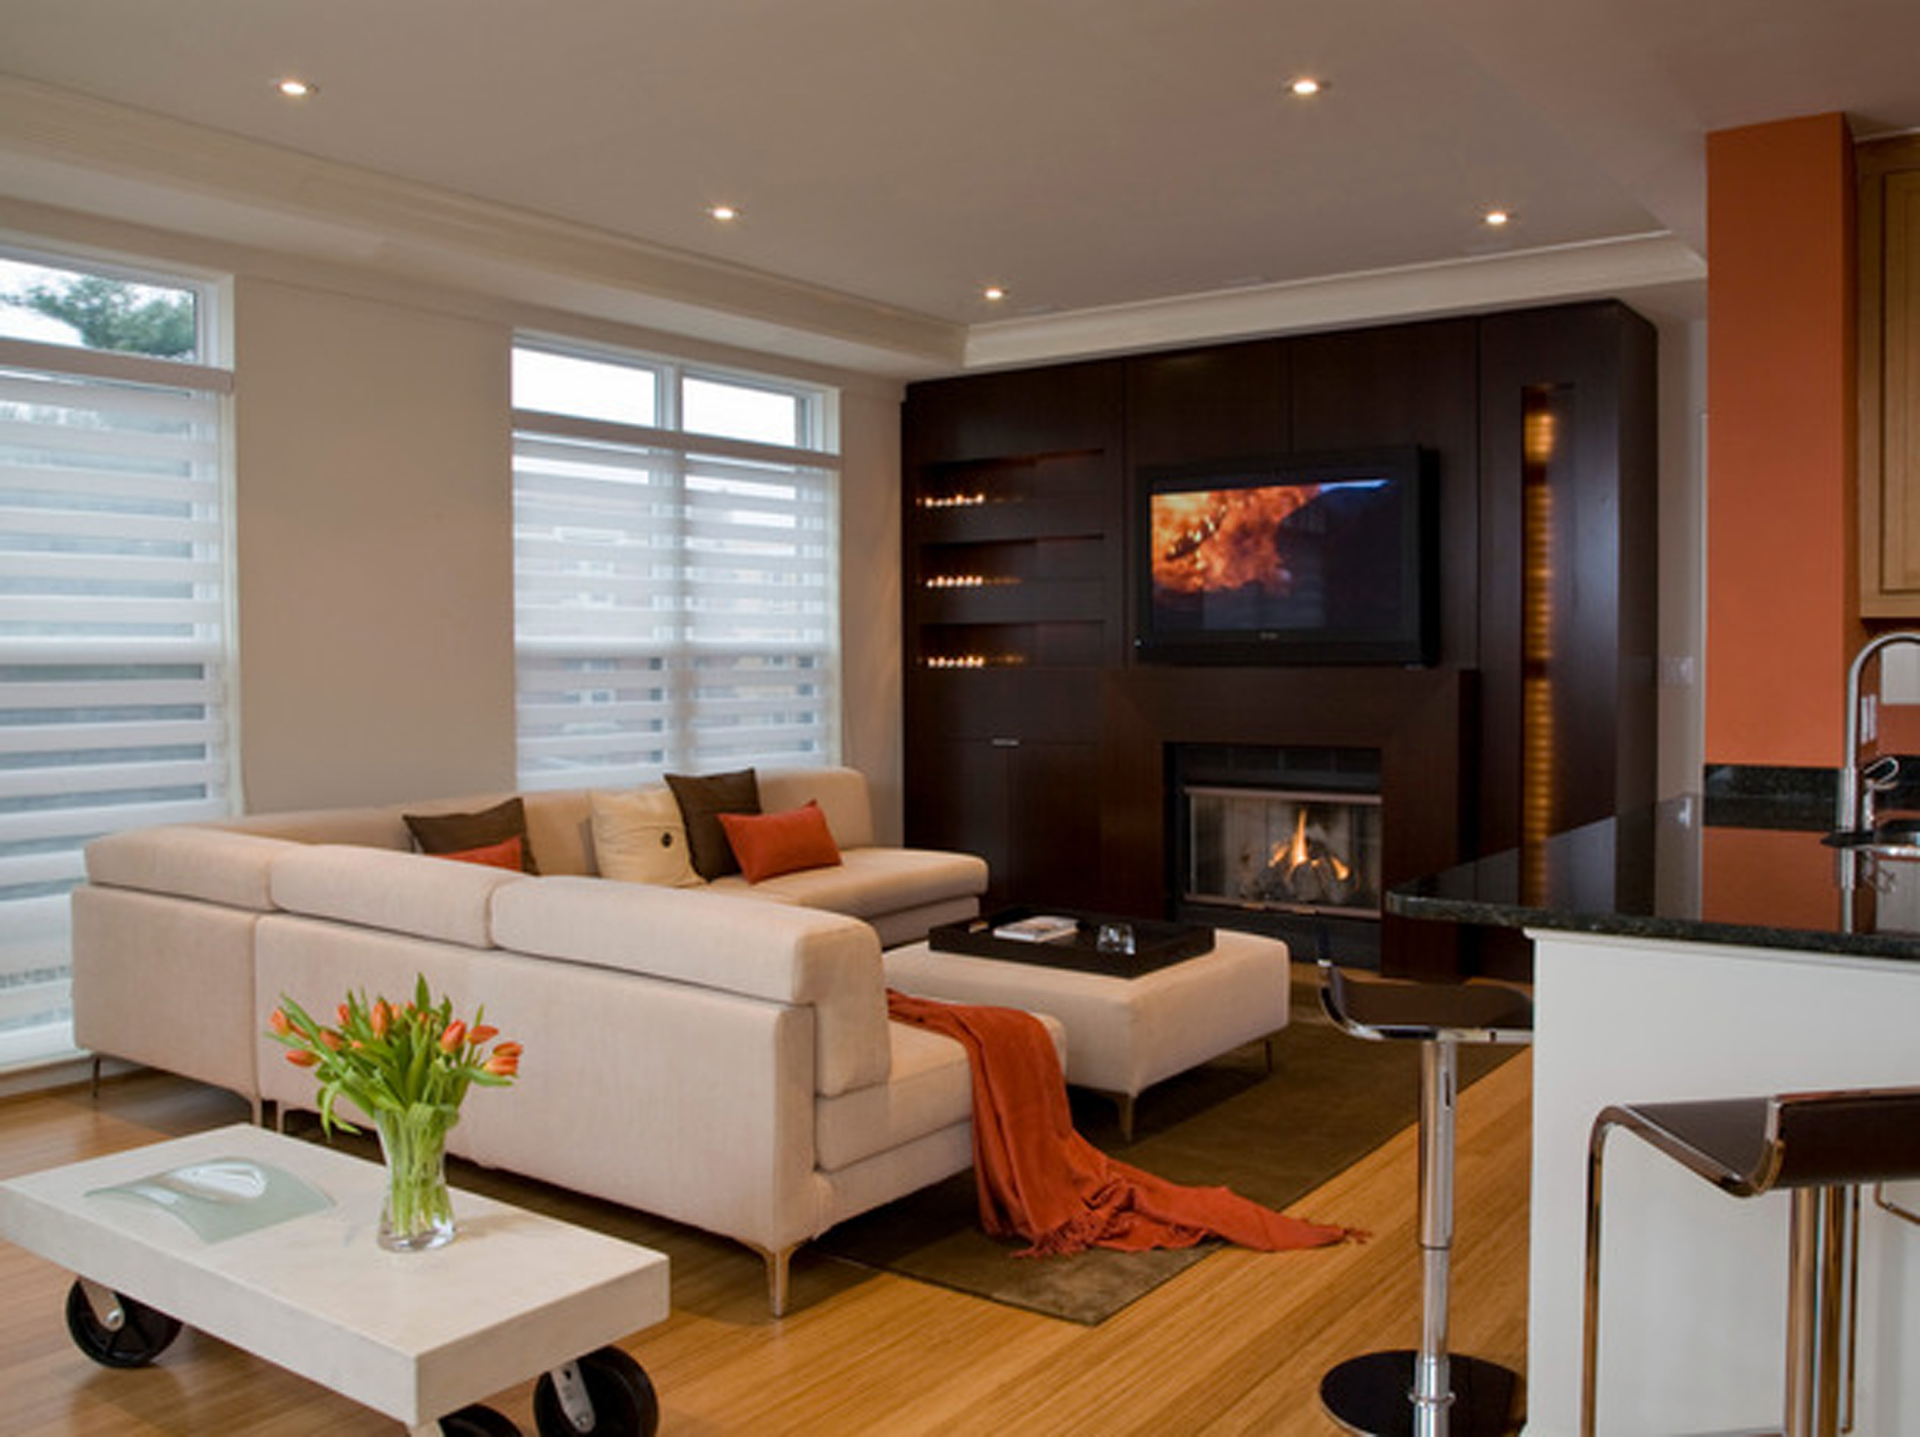 Incredible Modern Living Room with Fireplace and TV 1920 x 1437 · 865 kB · jpeg